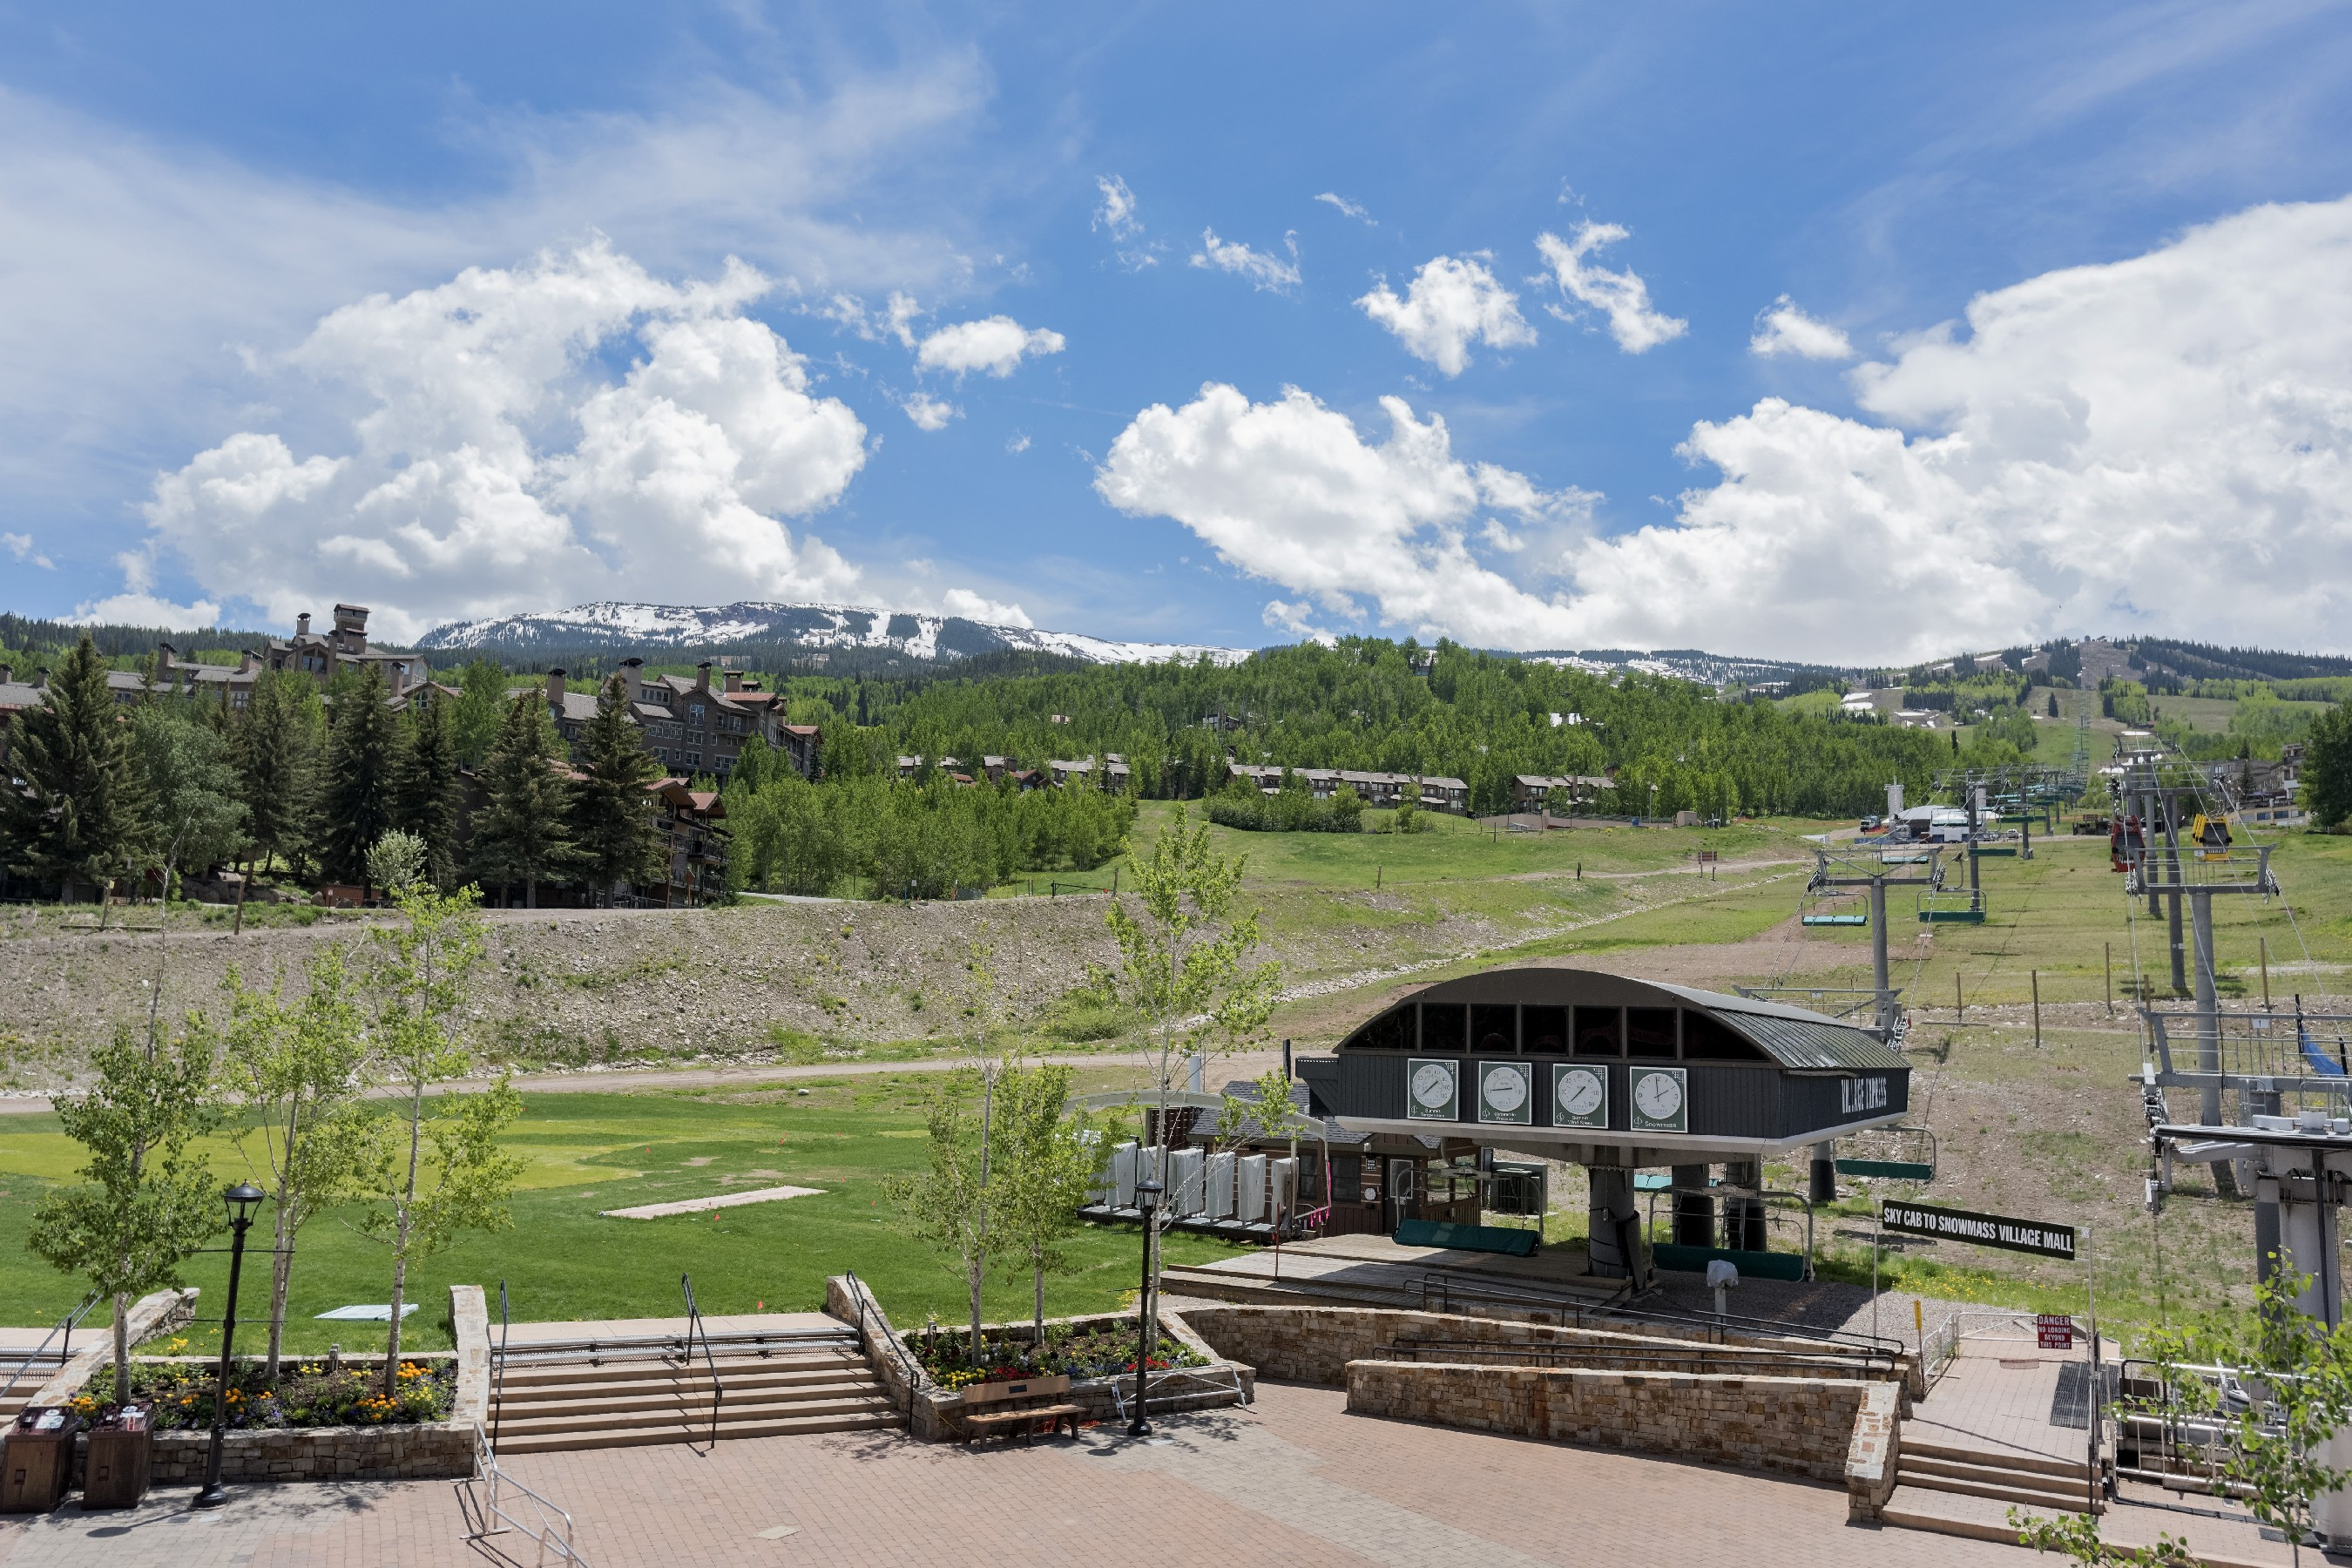 120 Carriage Way, Unit 2204 Snowmass Village Photo 1